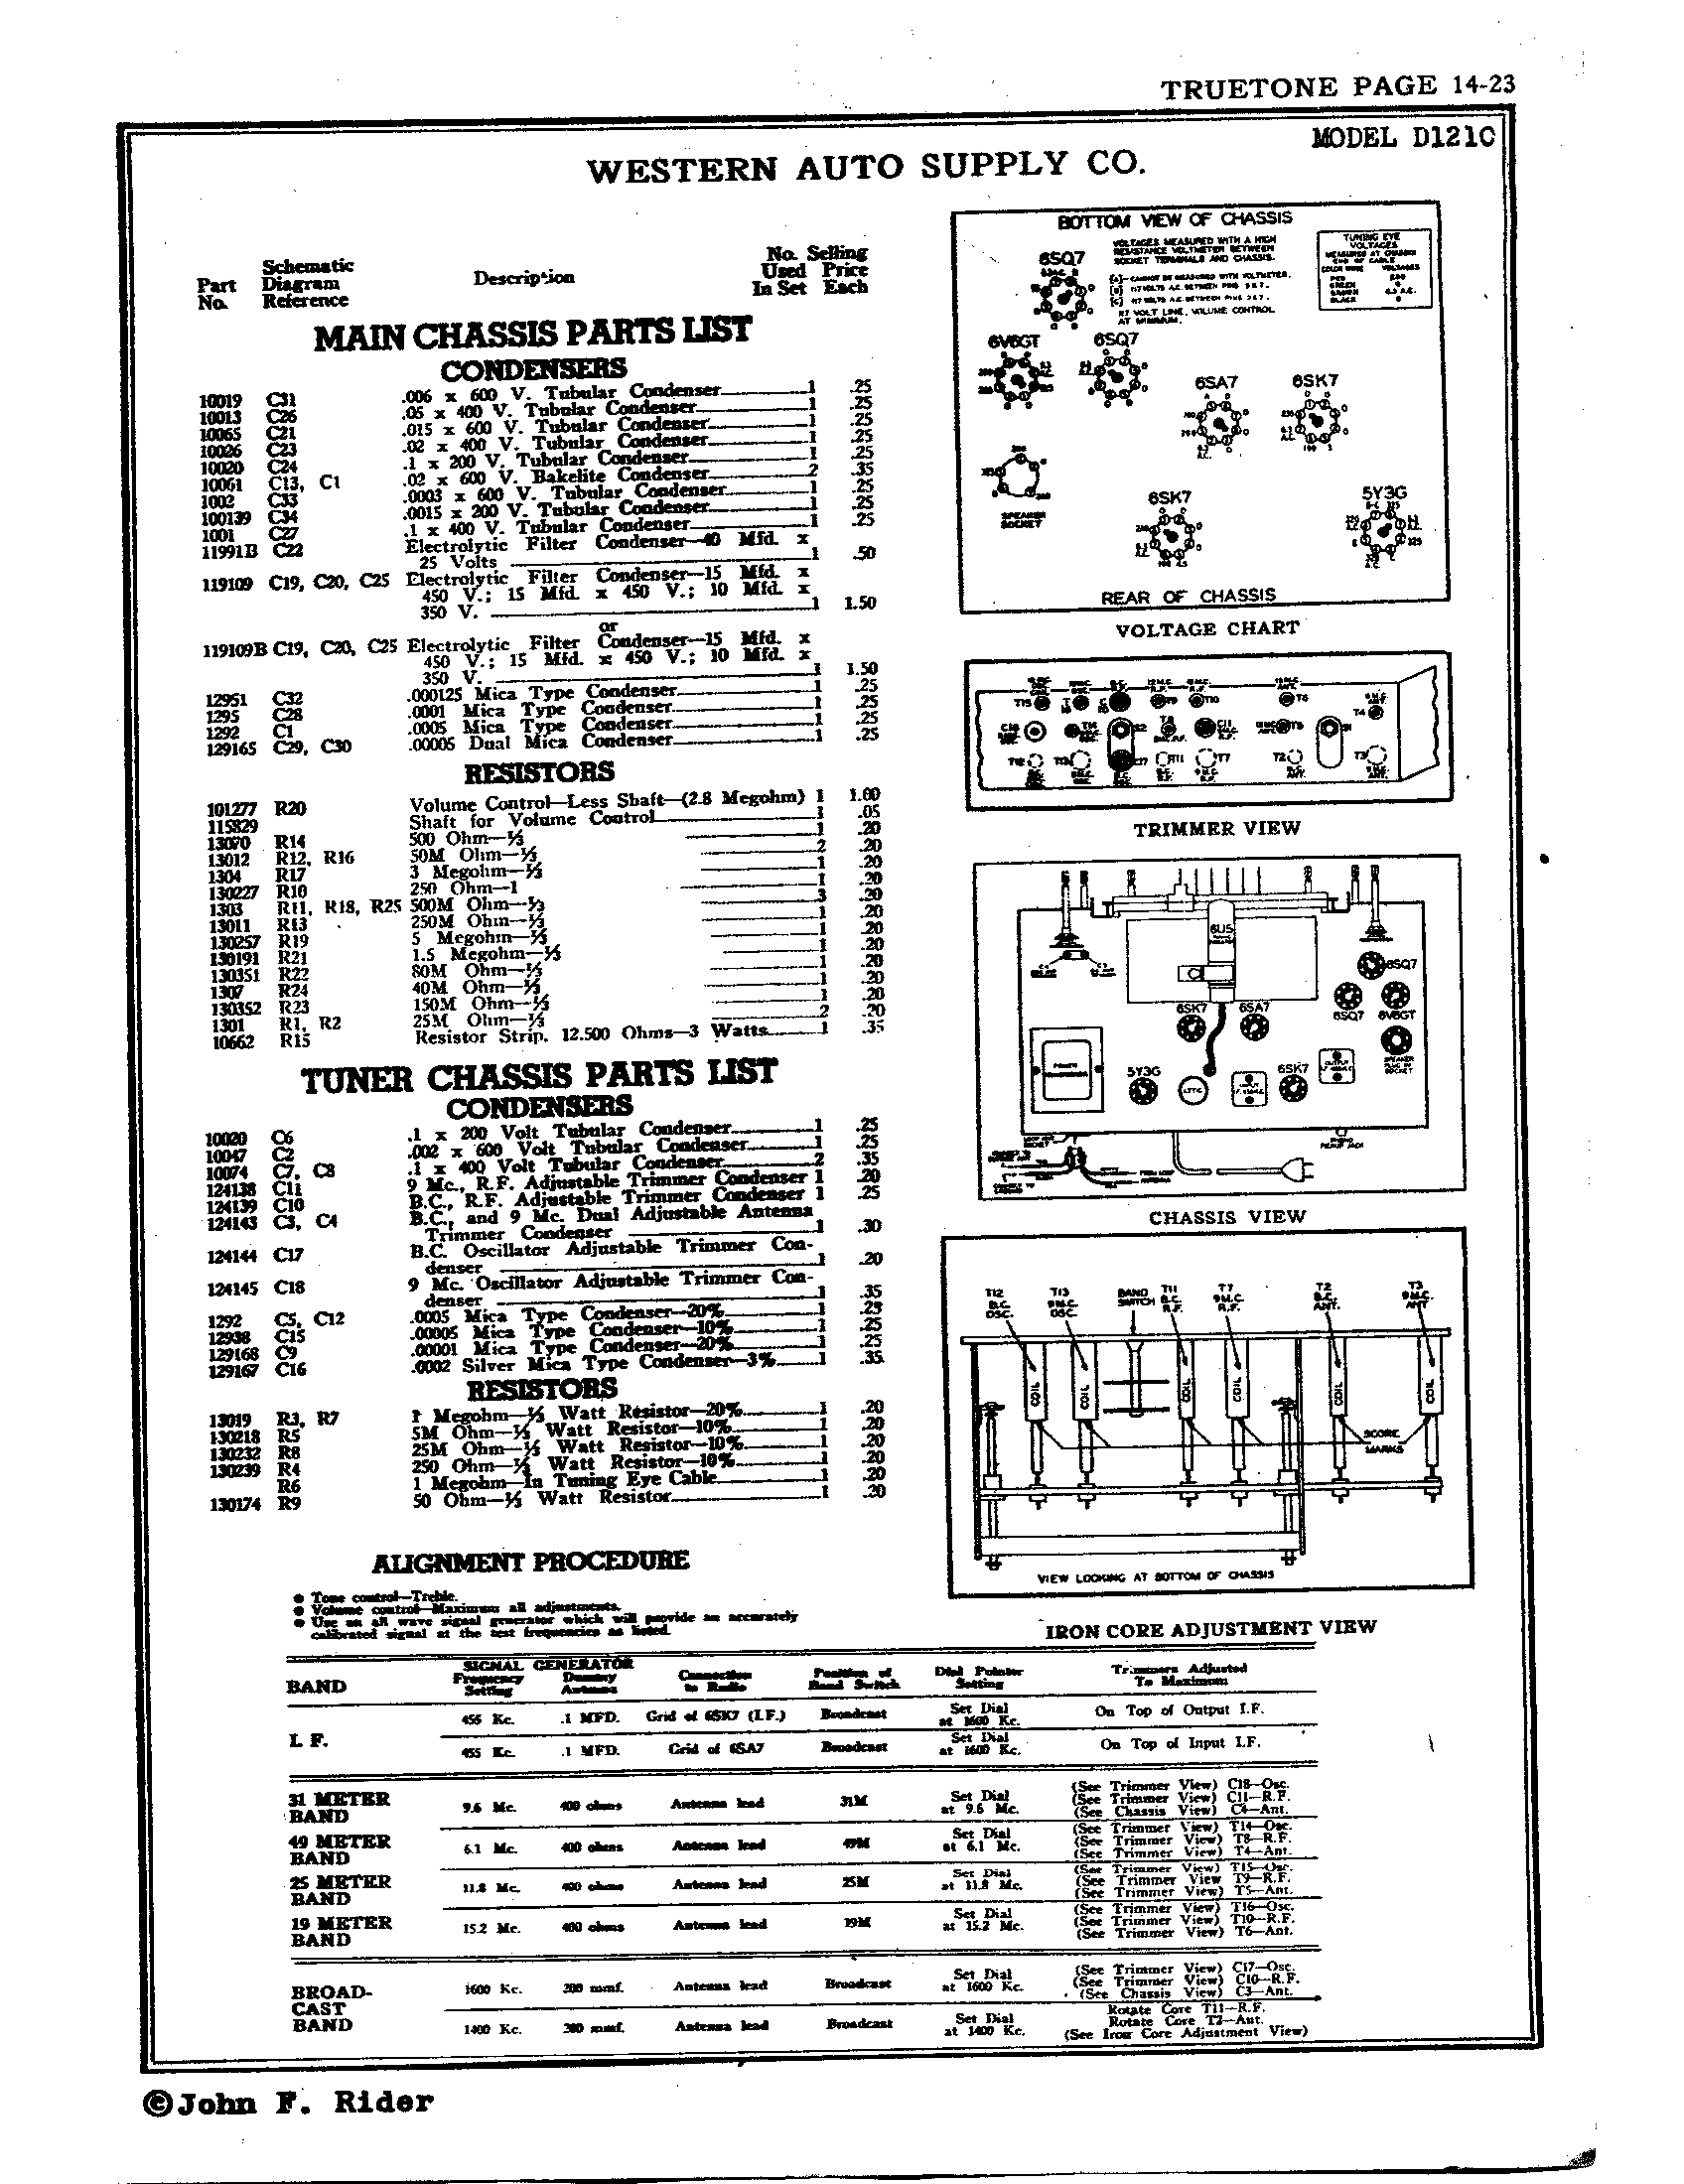 western auto supply co  d1210